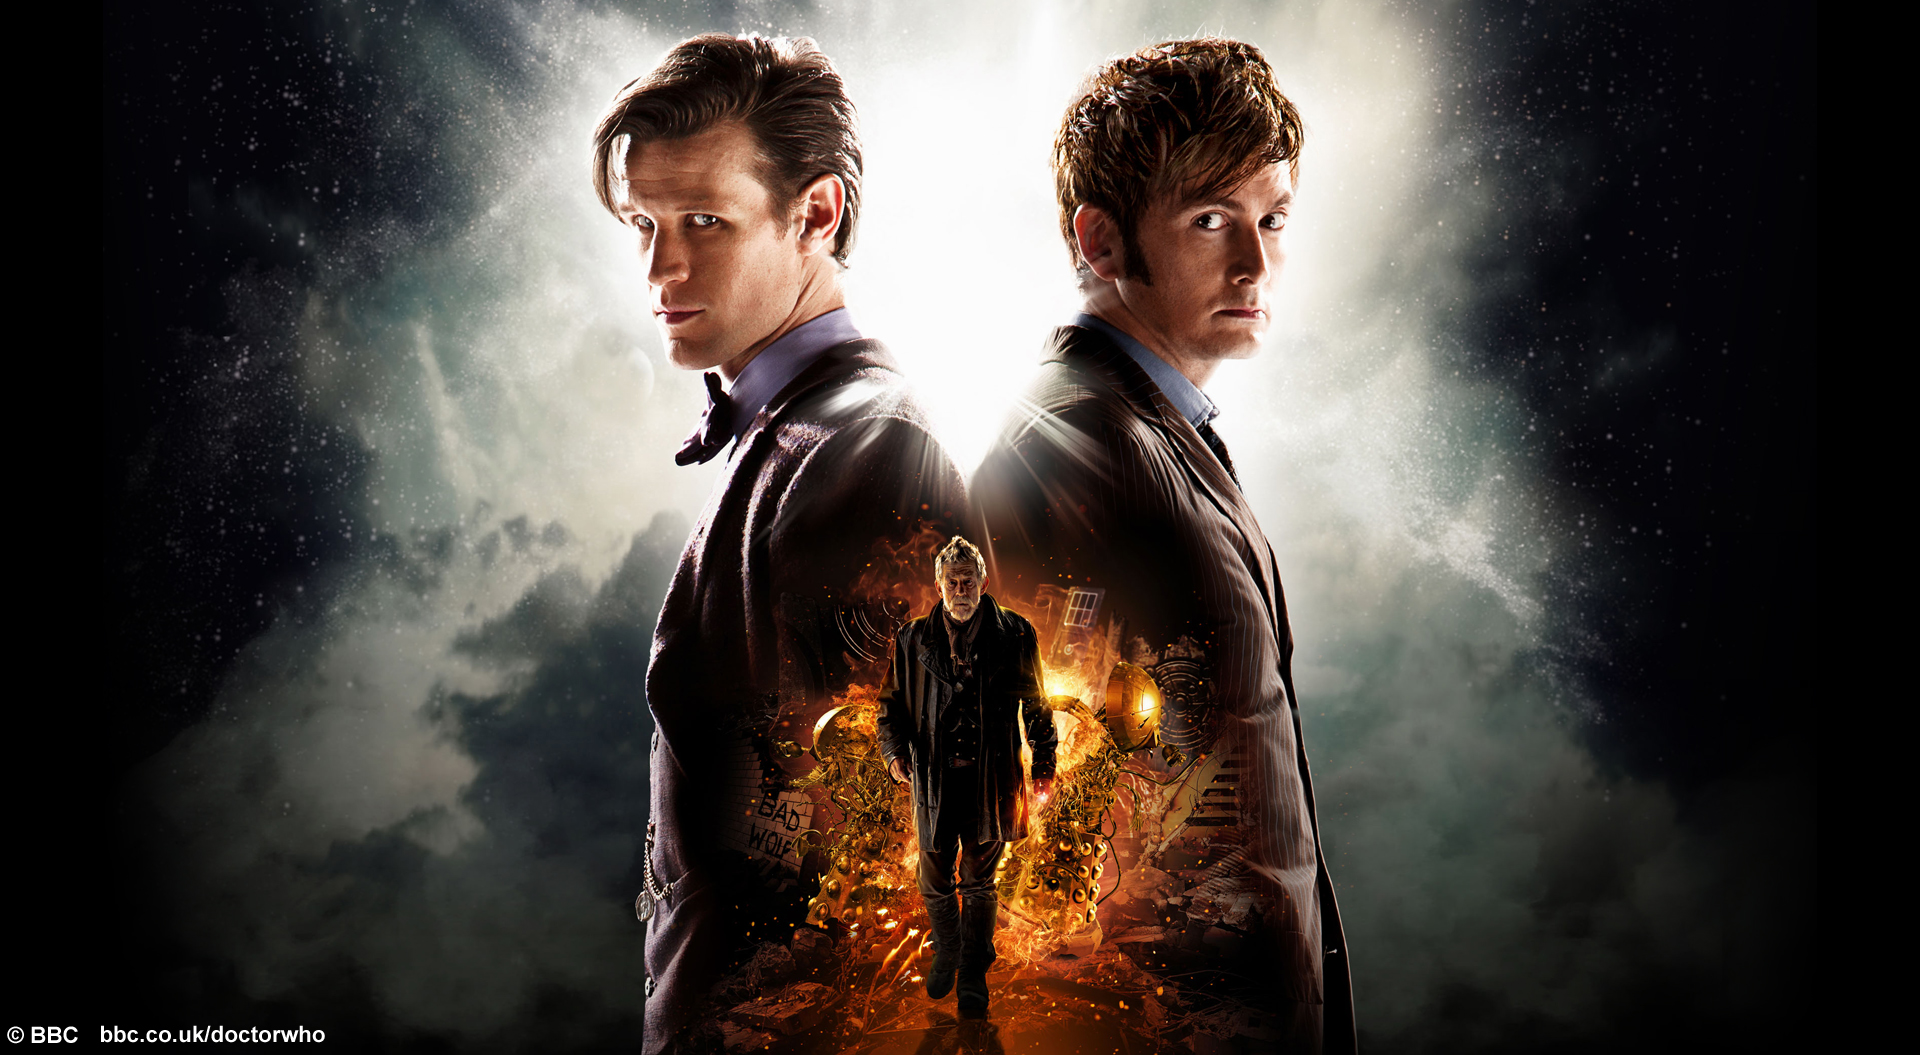 The Day of the Doctor (BBC/Doctor Who)